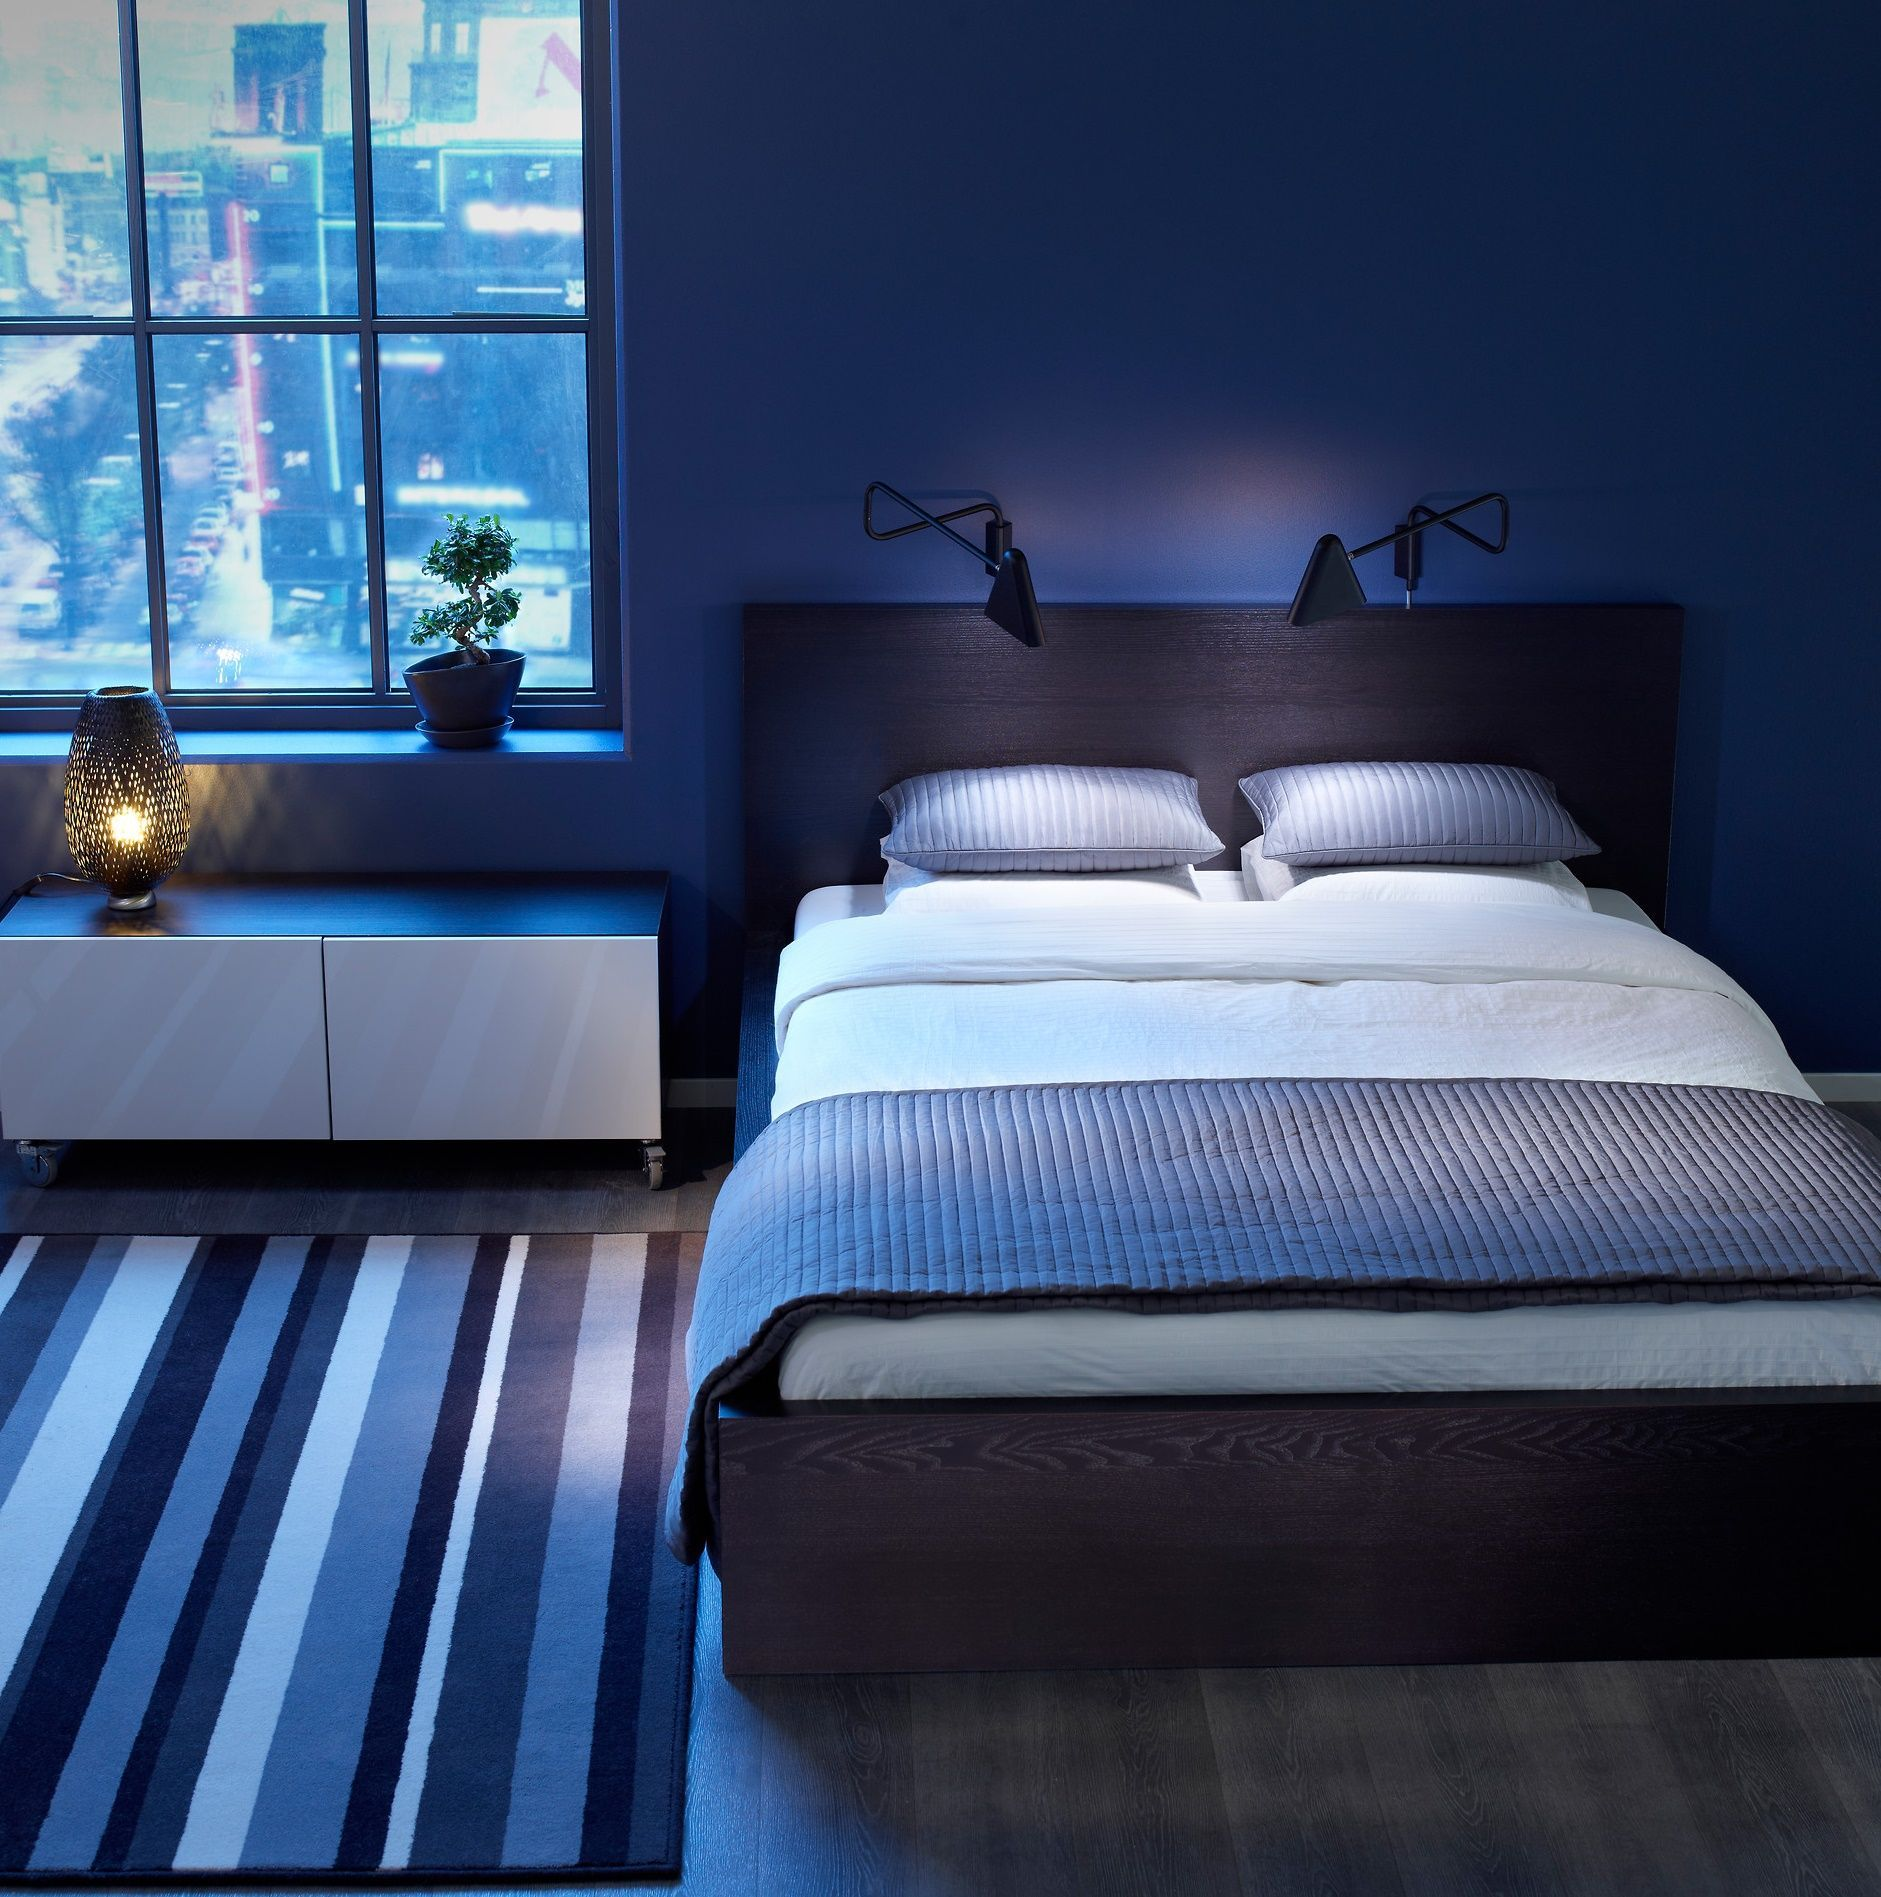 Blue Bedroom Ideas Zisne Com Good On With Tidy Showing Soft Bedding Set Gray Pai Small Bedroom Ideas For Couples Blue Bedroom Walls Bedroom Ideas For Men Small